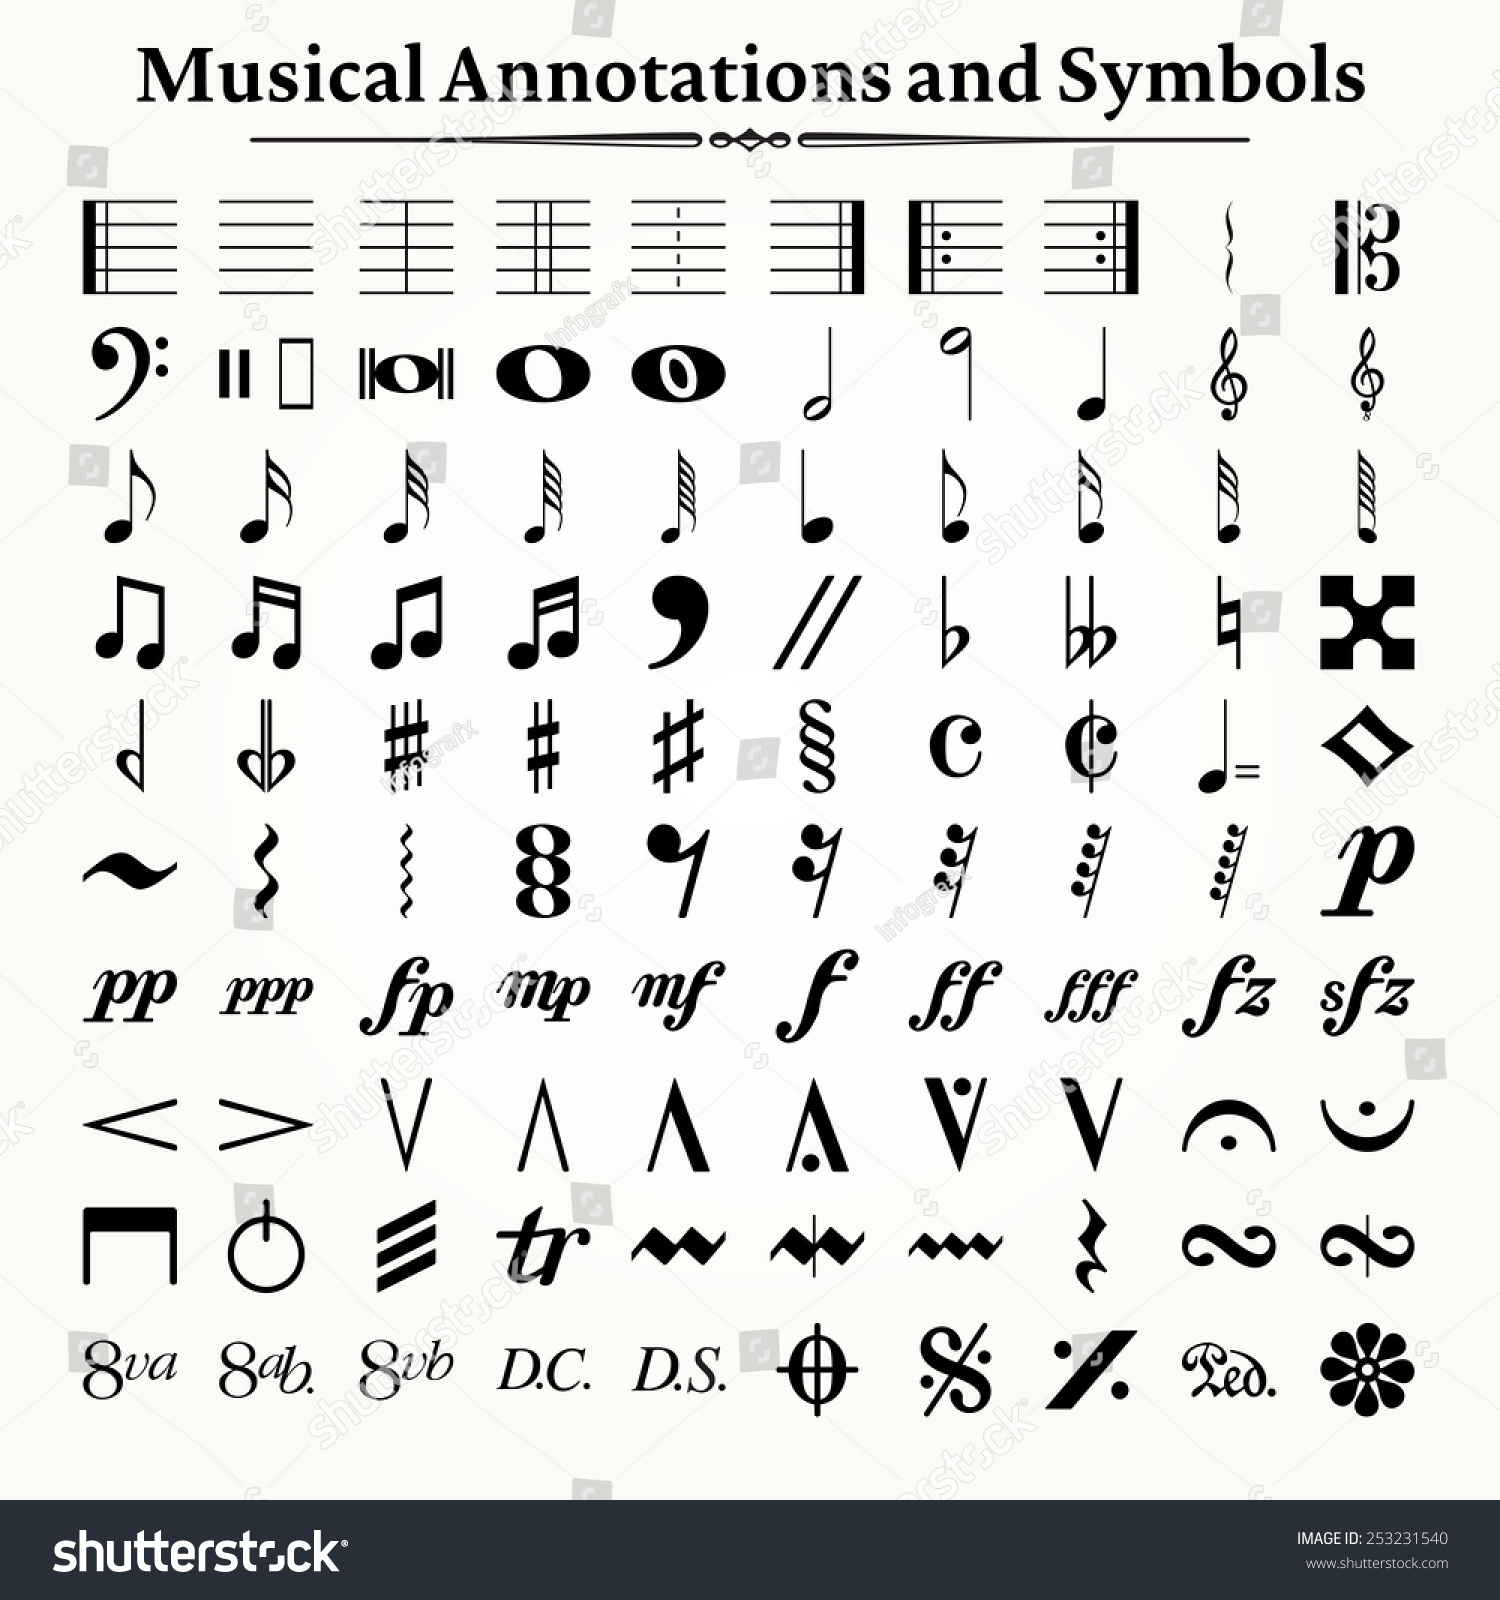 Elements musical symbols icons annotations stock vector 253231540 elements of musical symbols icons and annotations biocorpaavc Images